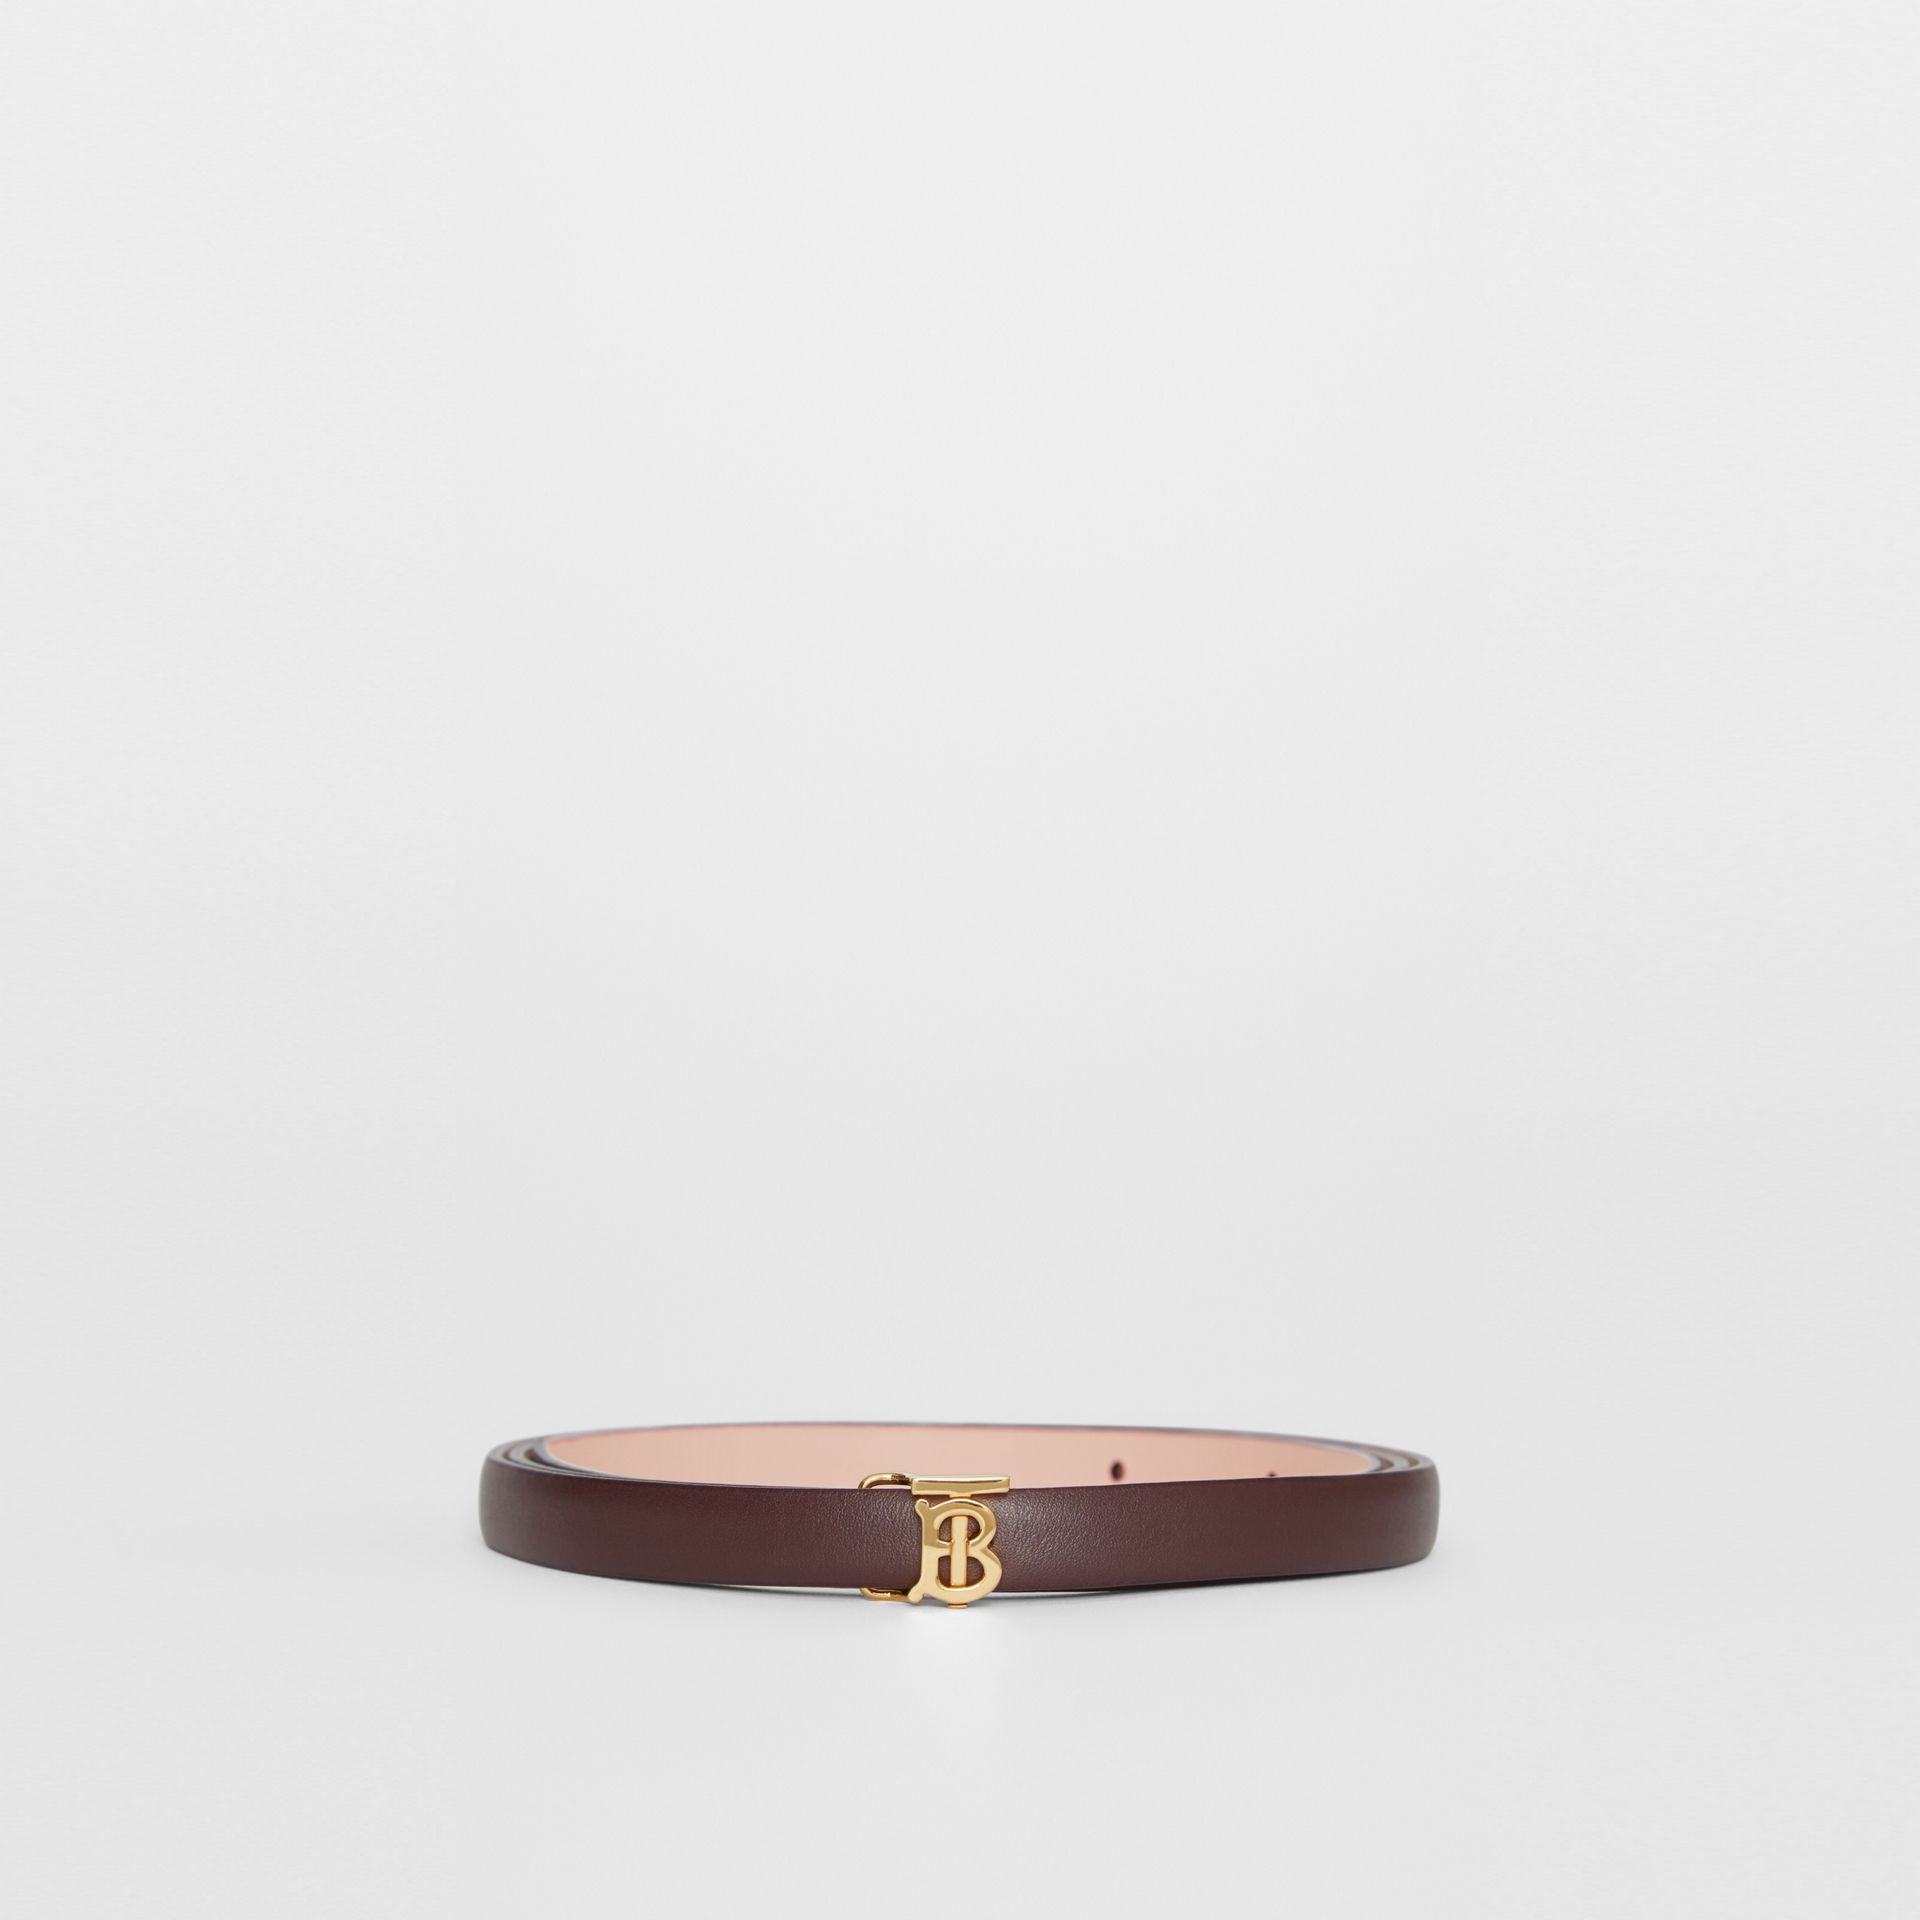 Reversible Monogram Motif Leather Wrap Belt in Oxblood/rose Beige - Women | Burberry - gallery image 3